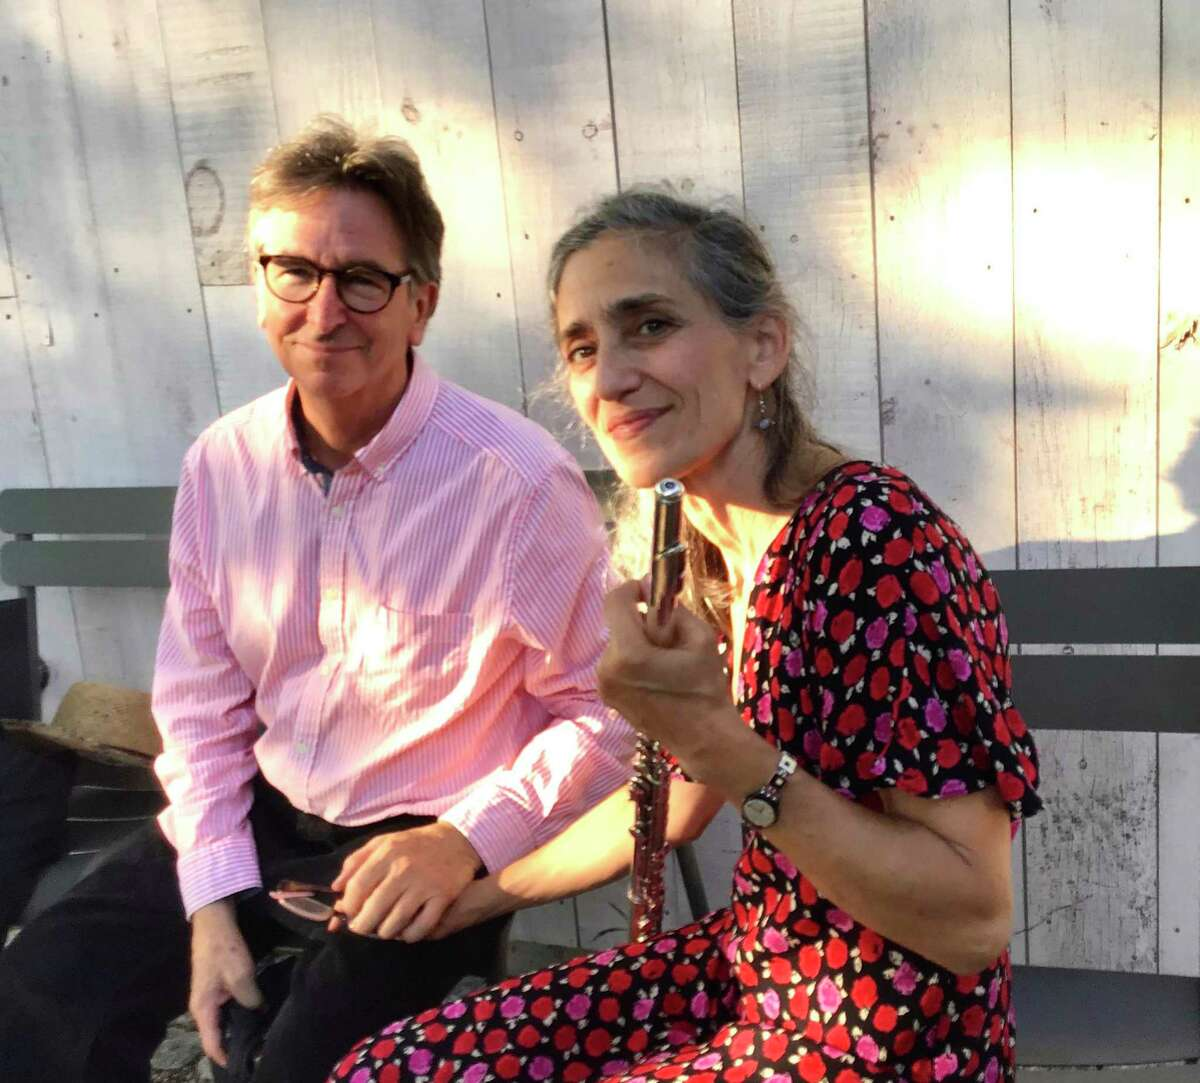 Sherman Chamber Ensemble Artistic Director Eliot Bailen, cellist, and his wife, Susan Rotholz, flutist, will be among the musicians to perform in a Sept. 12 concert that will celebrate Beethoven.